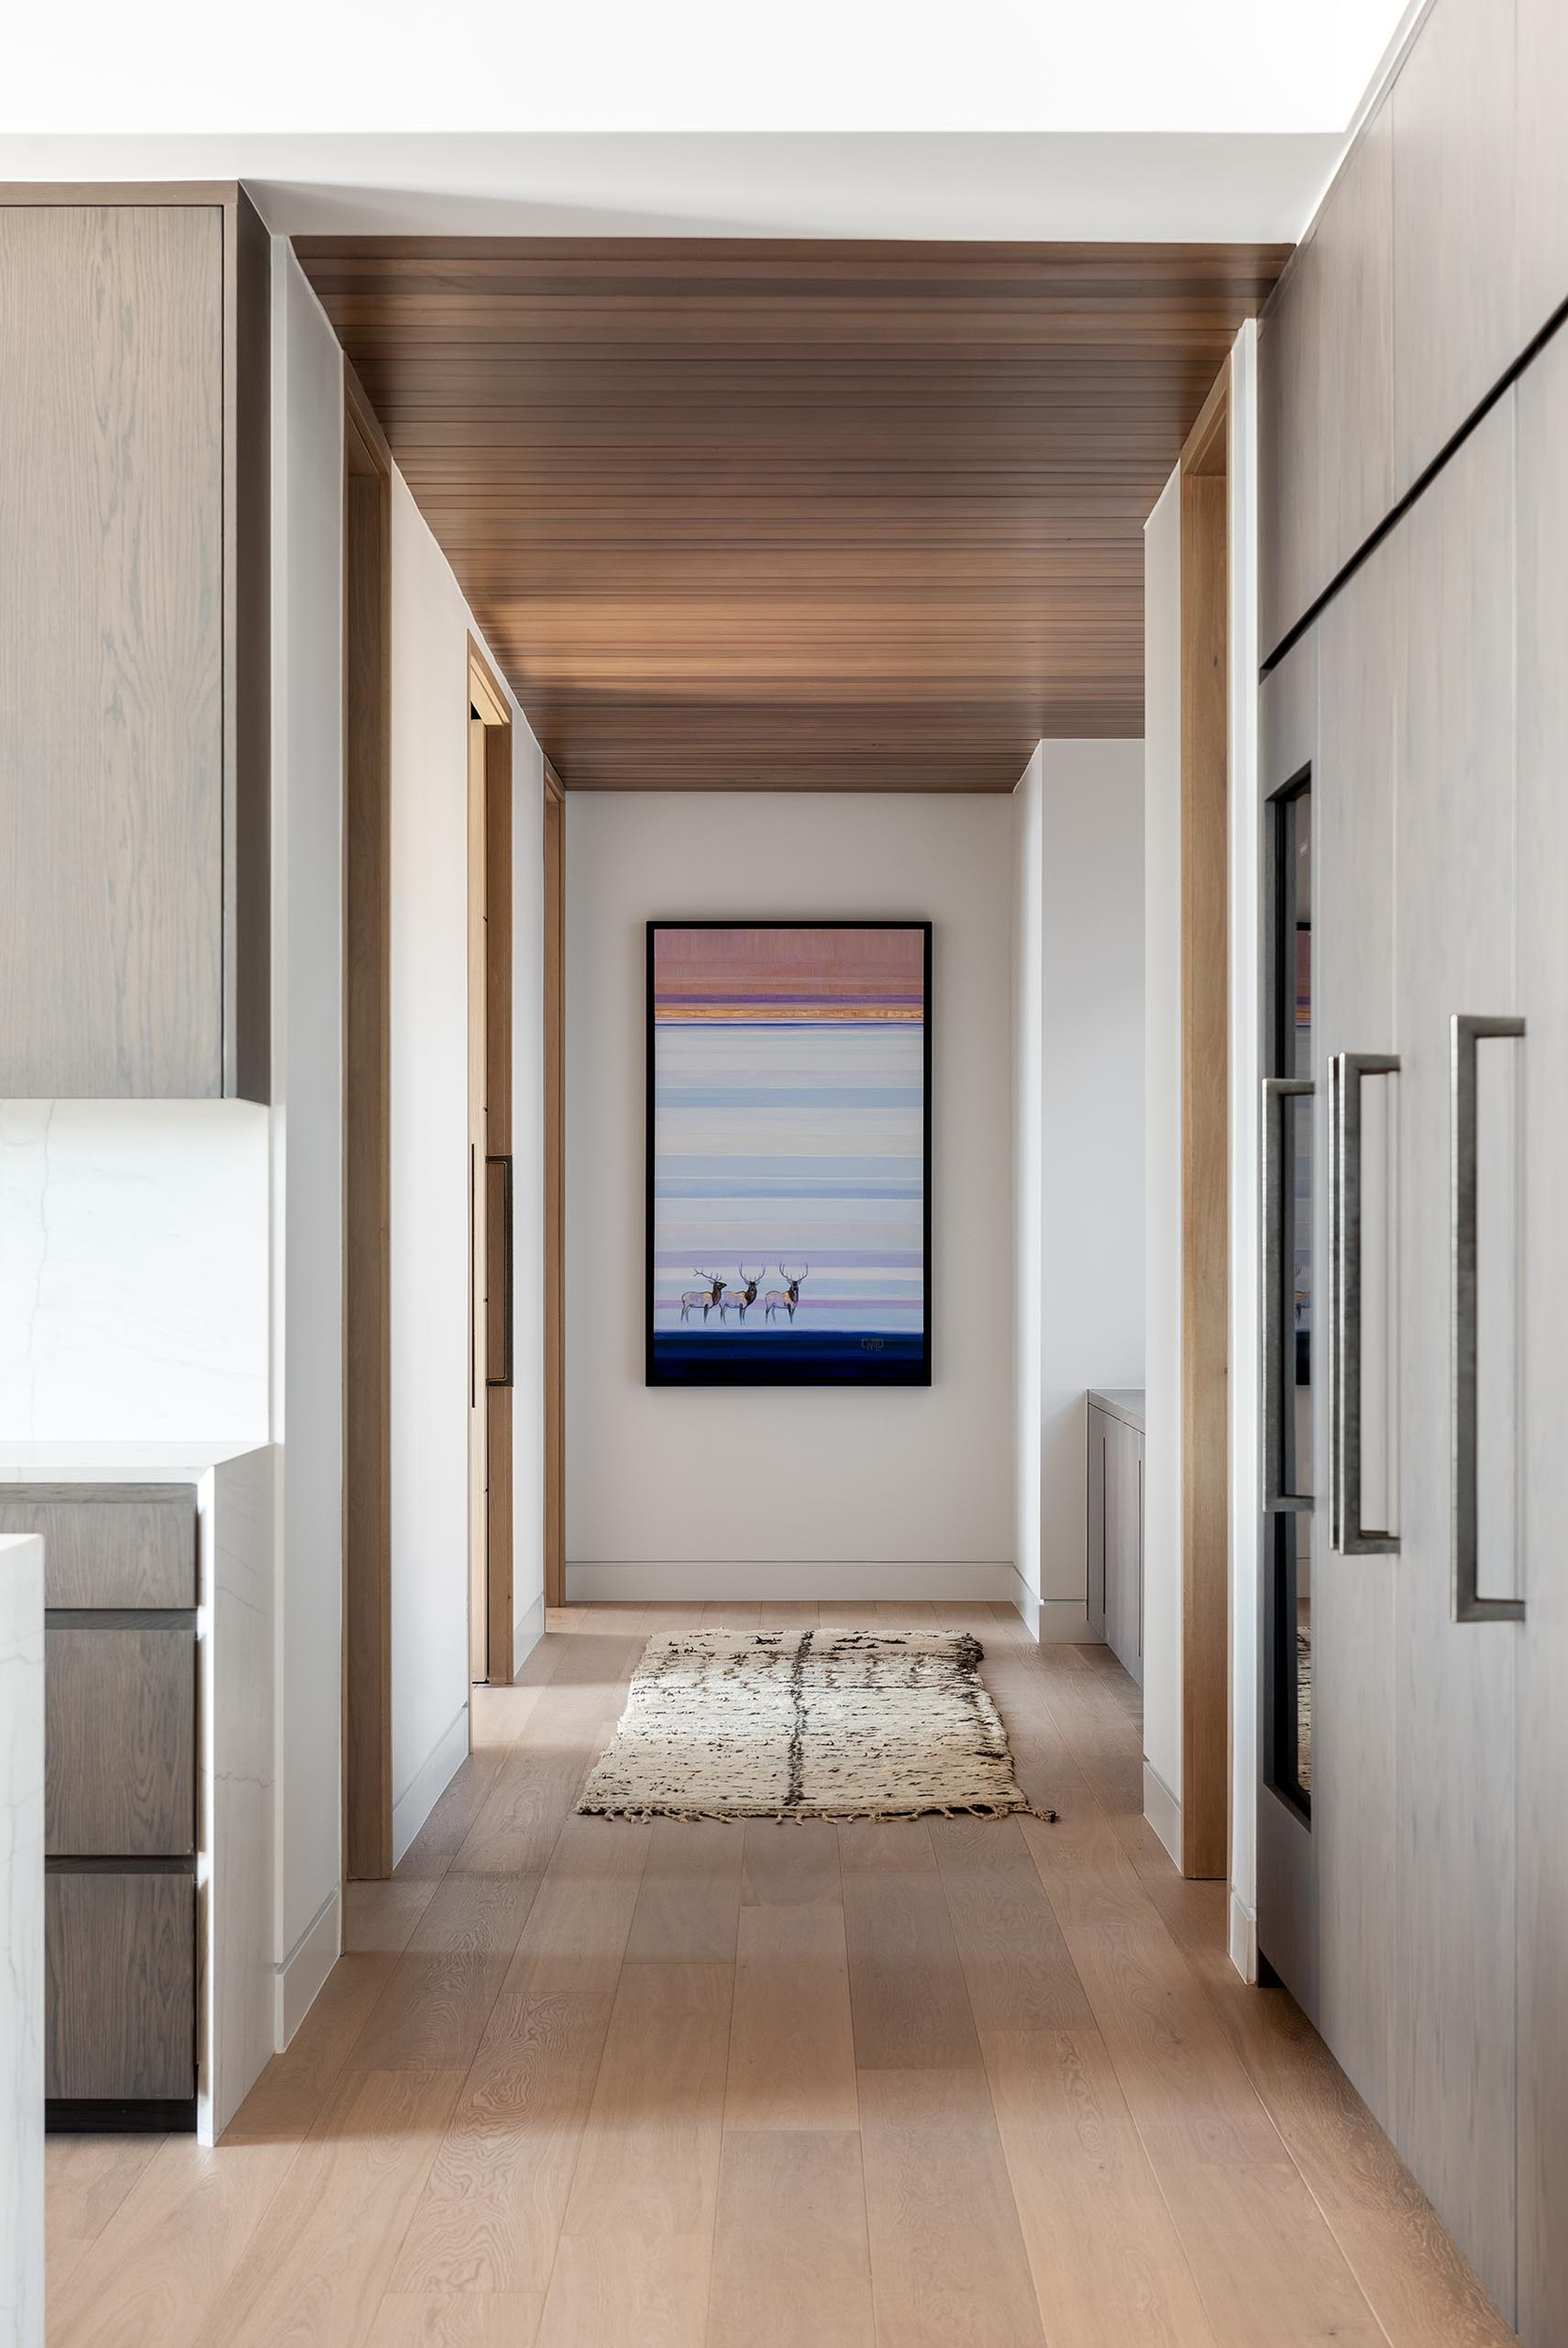 In this modern hallway, the wood ceiling and wood floors add warmth to the interior.